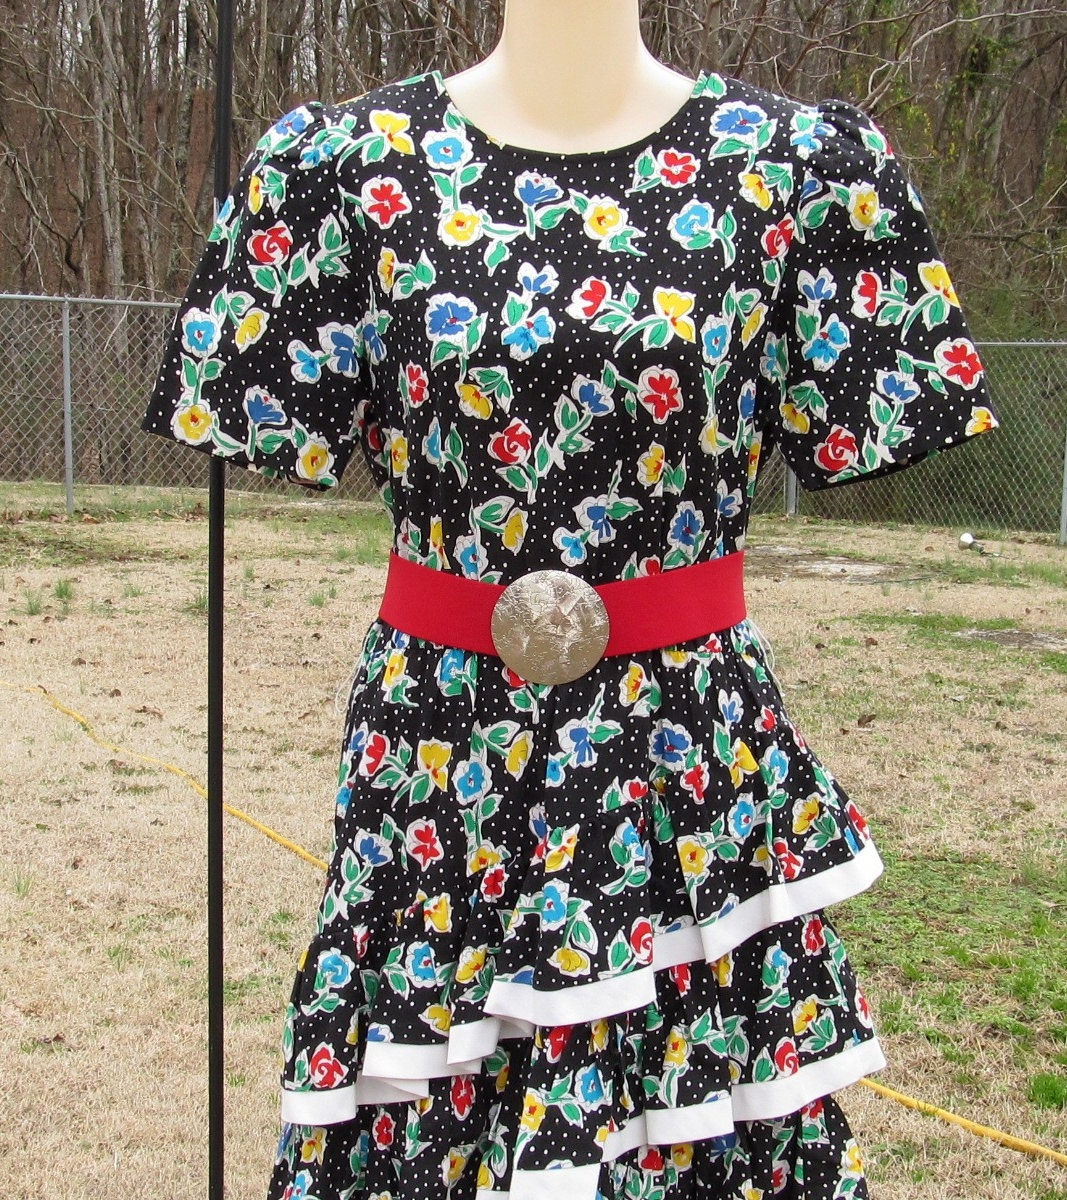 Vintage Straight Black Dress with 3 Cha Cha Layers 1980s Floral Design Size 11-1 image 4